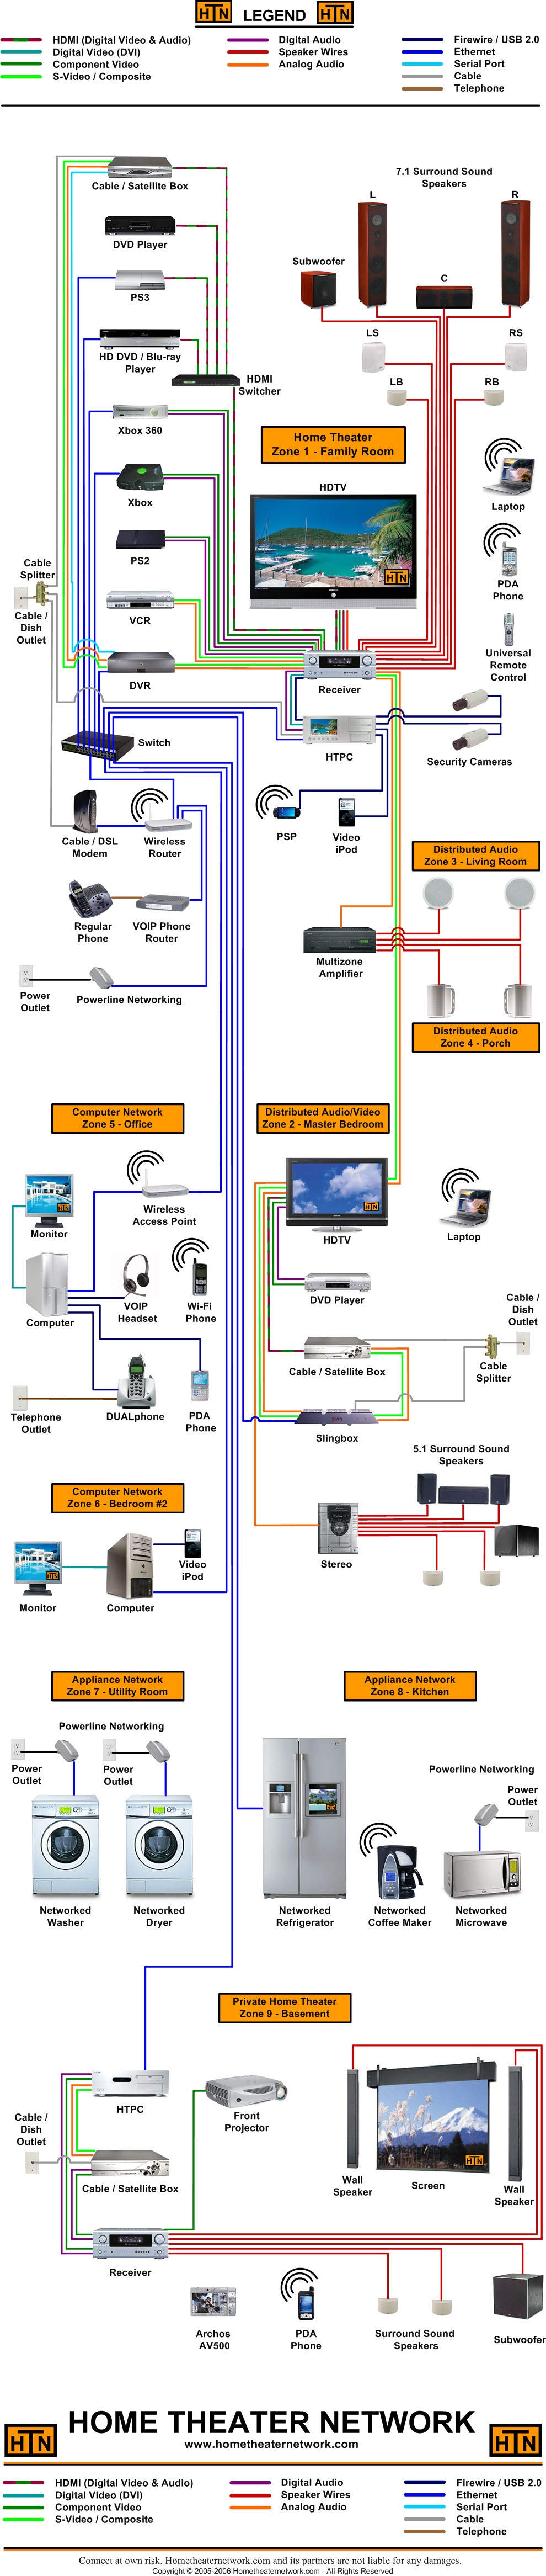 home theater network    s large block diagram